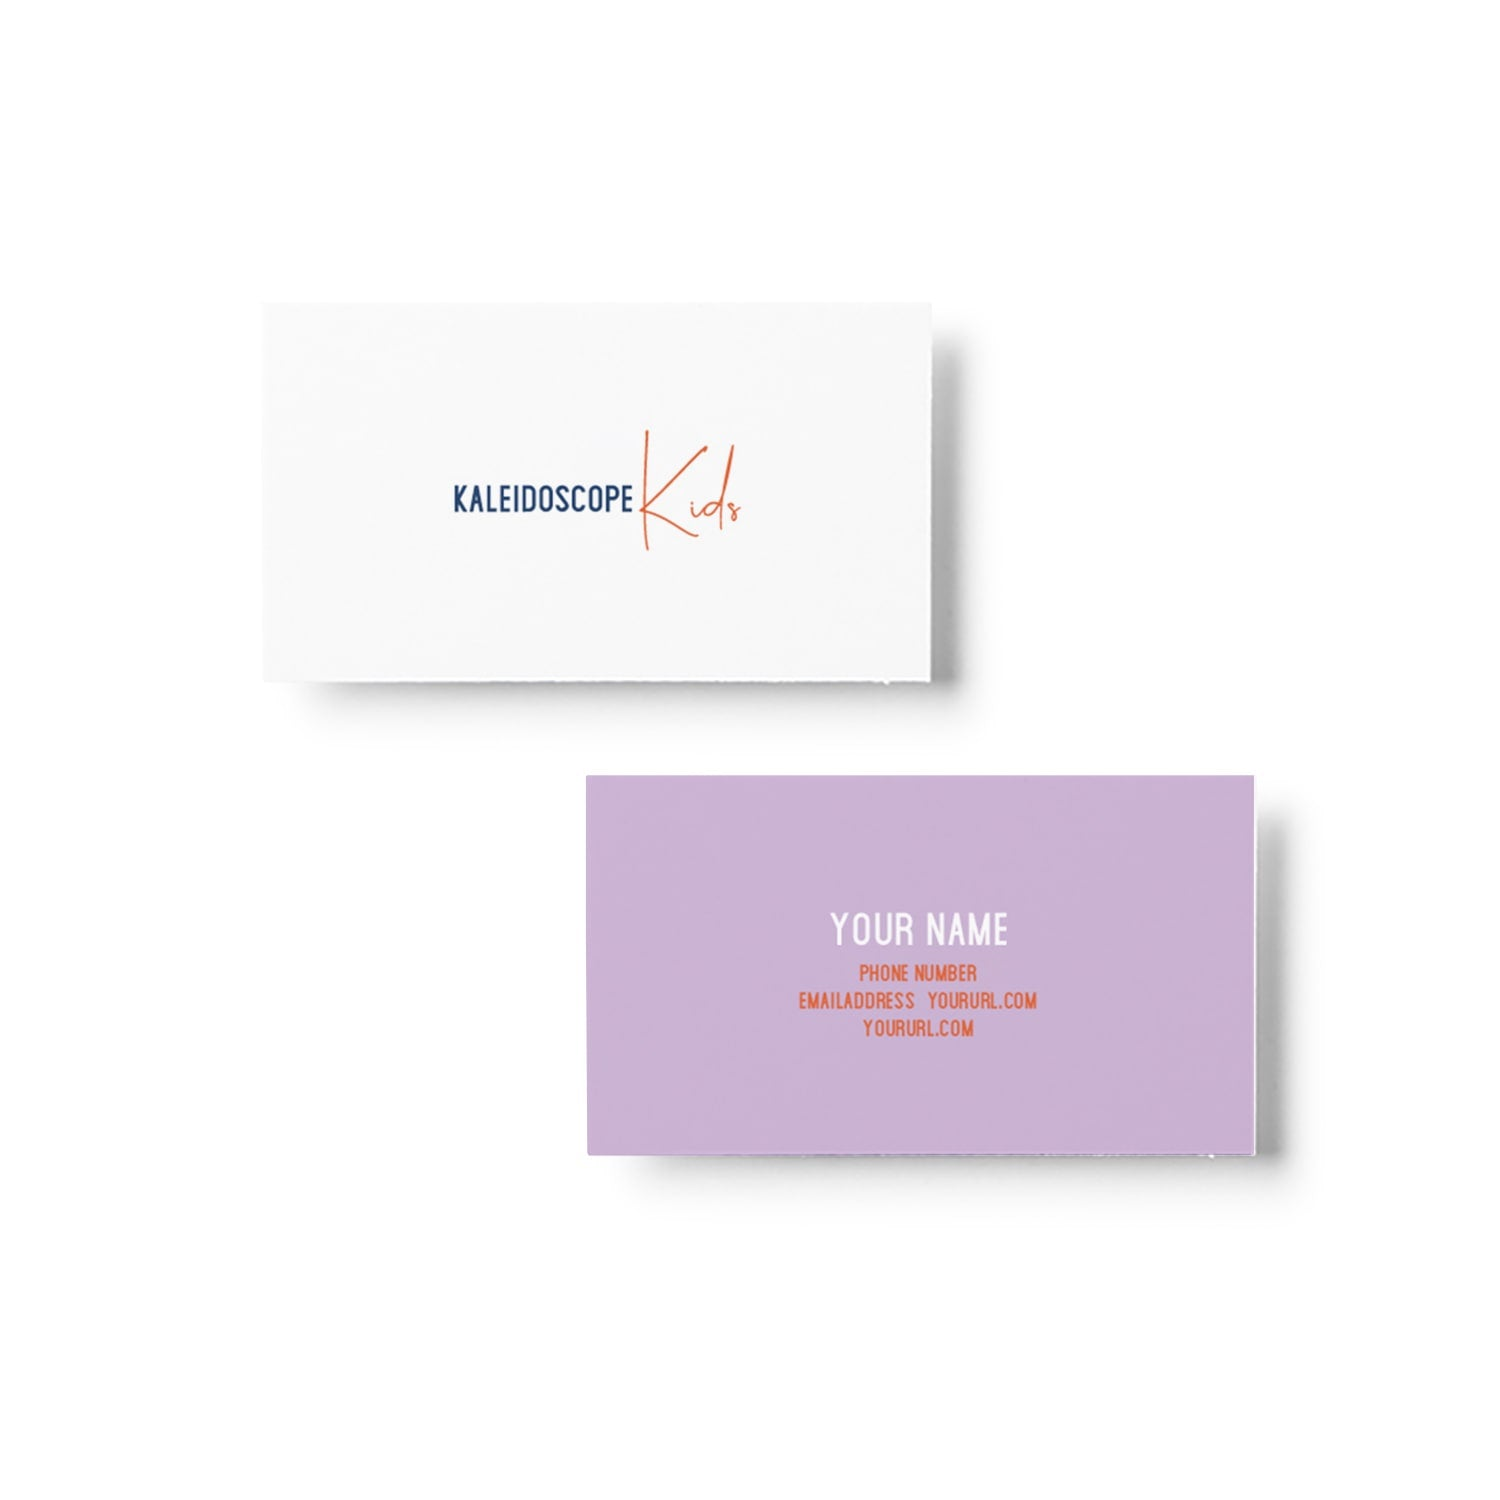 Kaleidoscope Kids Business Card Design_Copyright Tiny Crowd